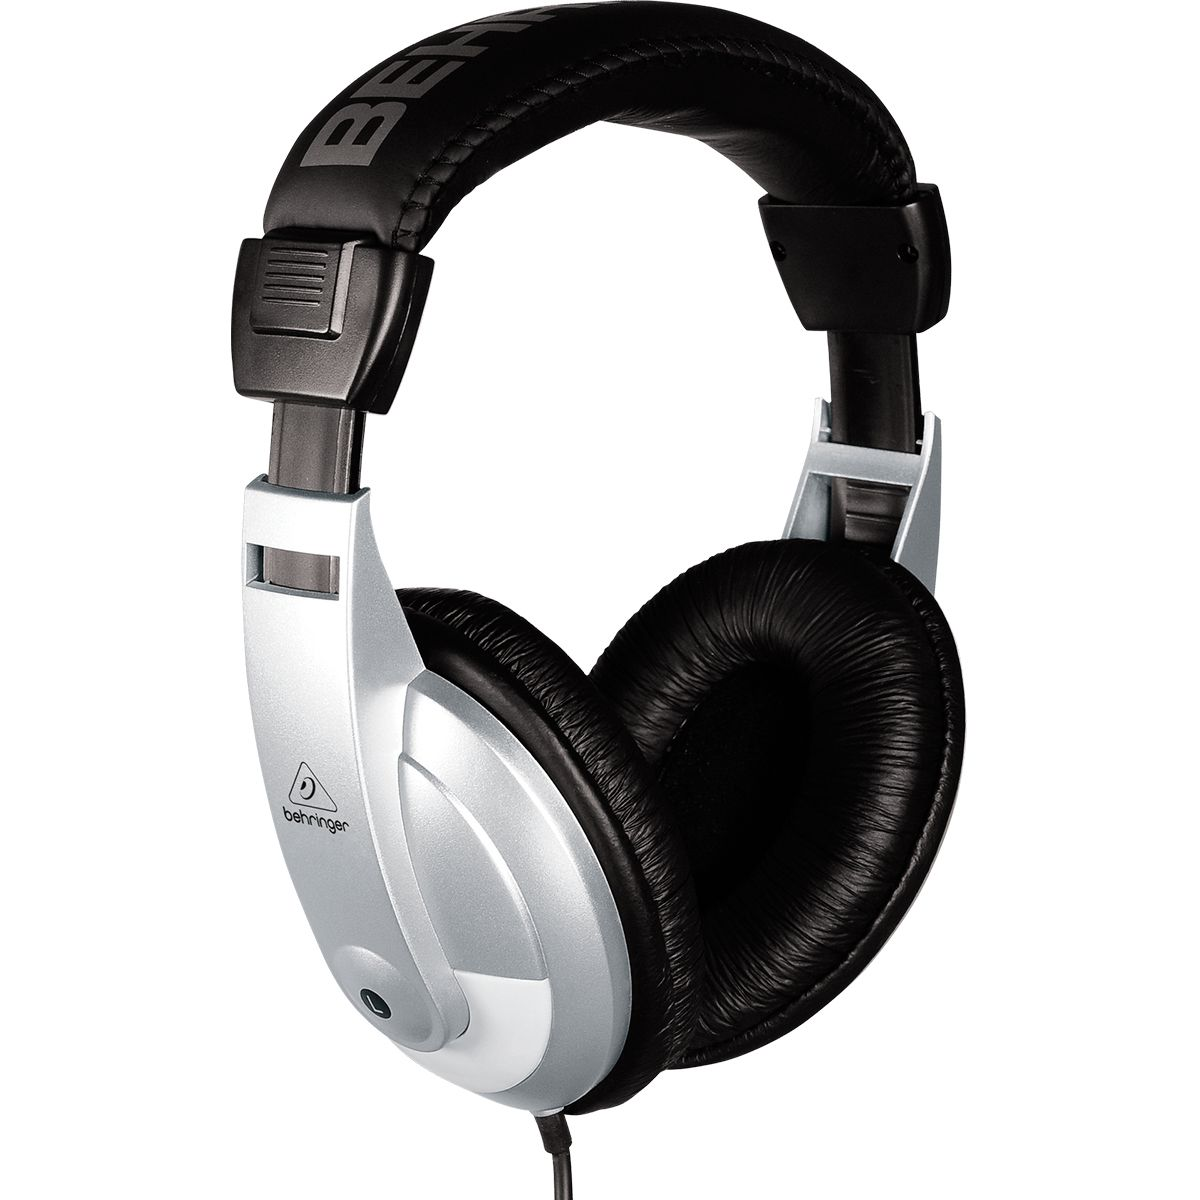 Fone de Ouvido Behringer HPM1000 High Performance Over Ear